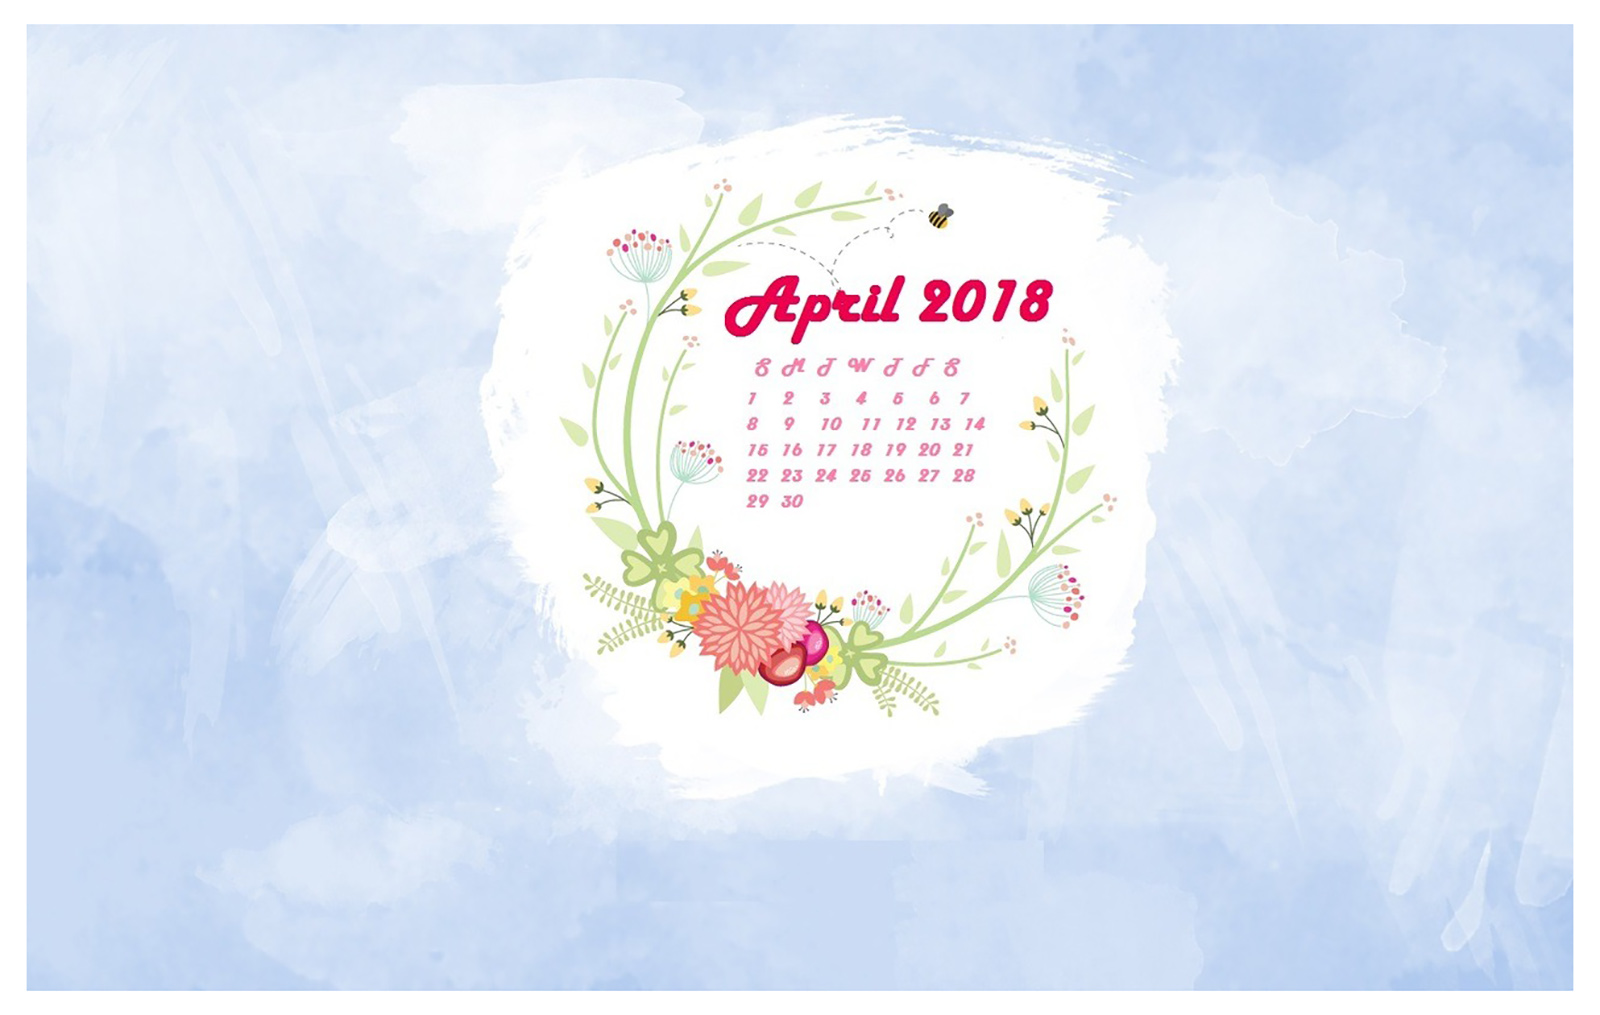 Wallpaper with April 2018 Calendar for PC iPad and SmartPhone 1600x1015